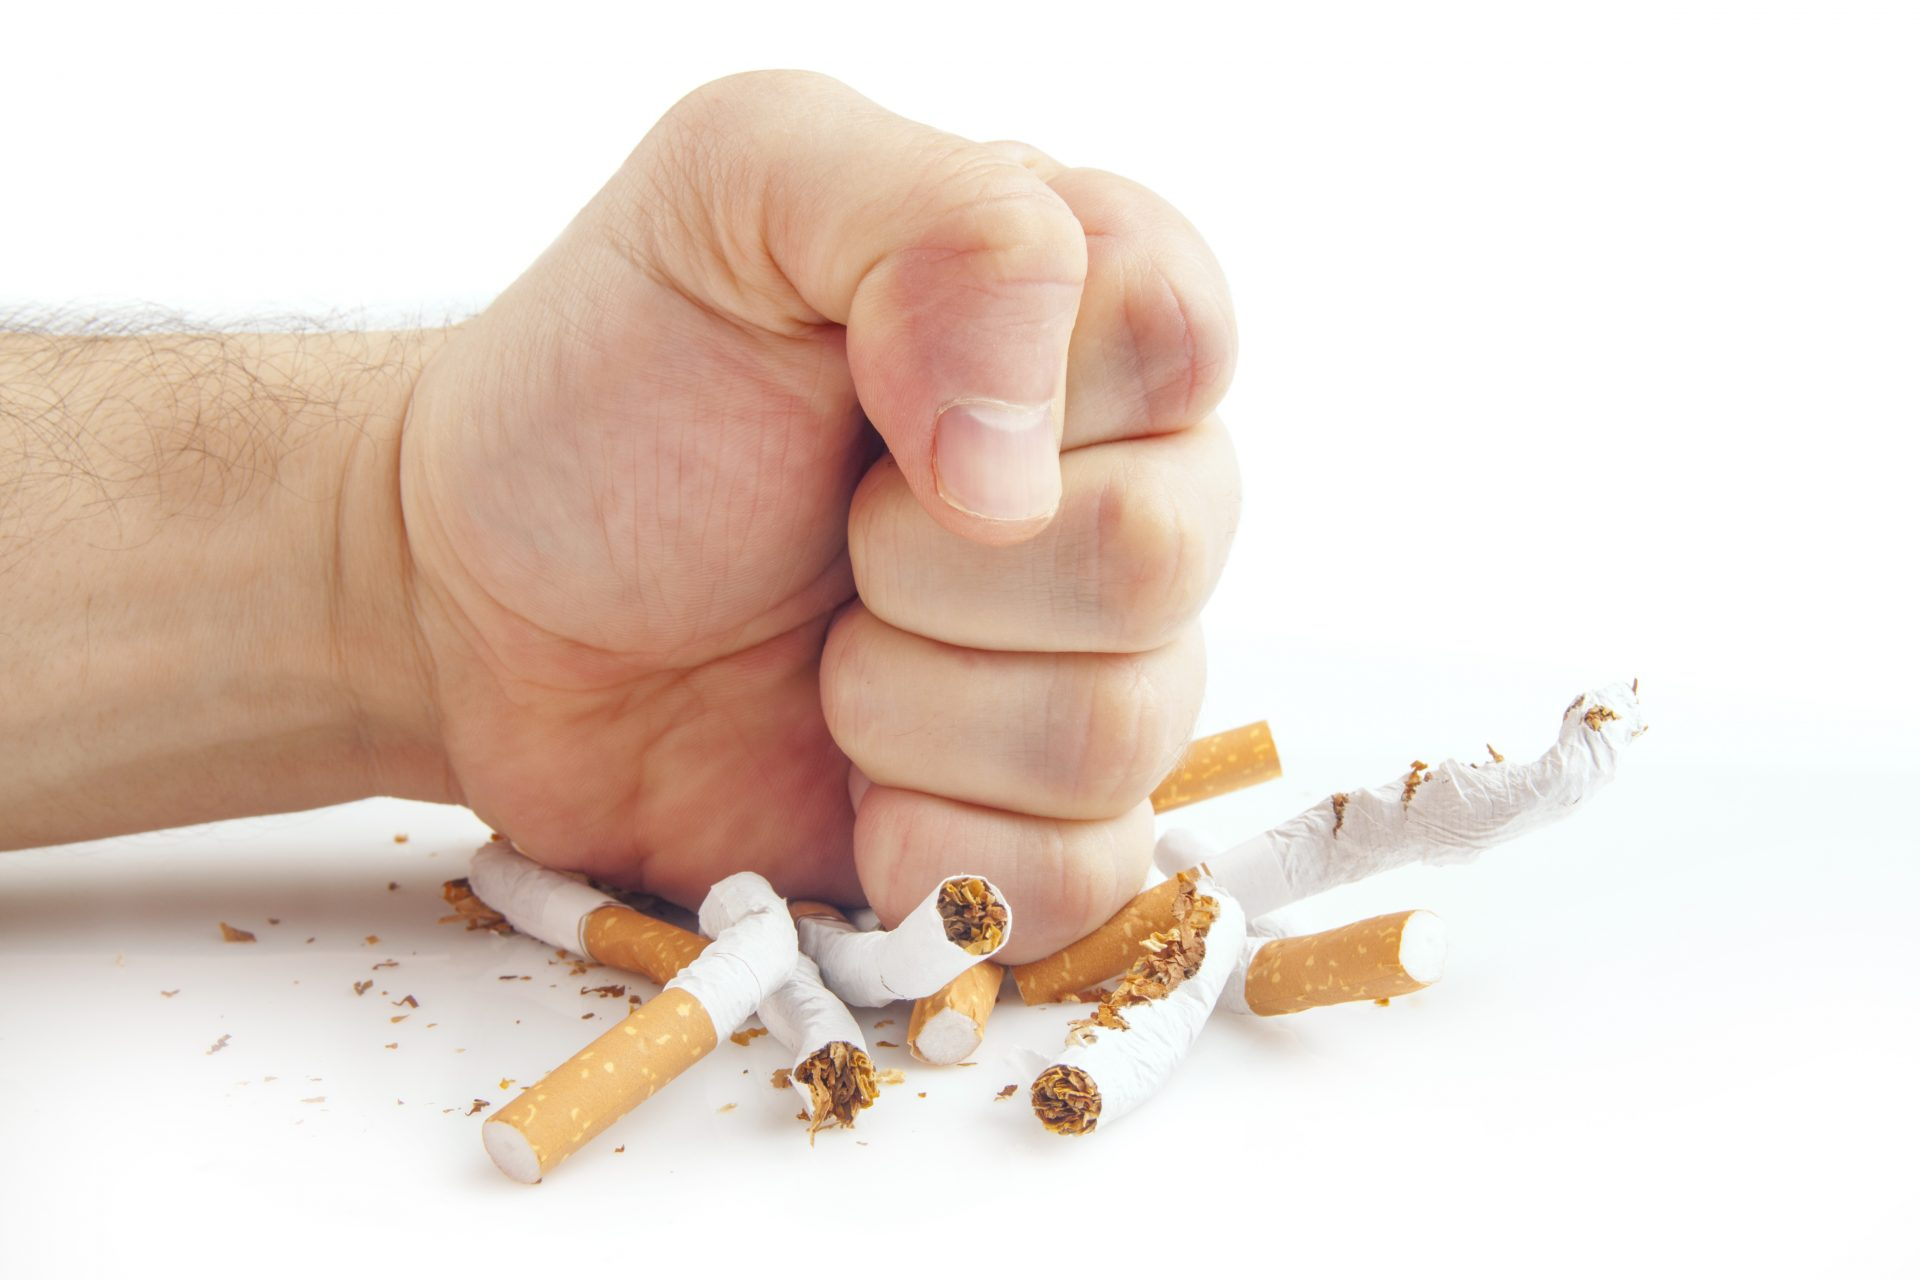 quitting cigarettes 97 reasons to quit smoking alternative methods for quitting smoking: hypnosis  for many smokers, cigarettes and alcohol are interconnected, says glynn.